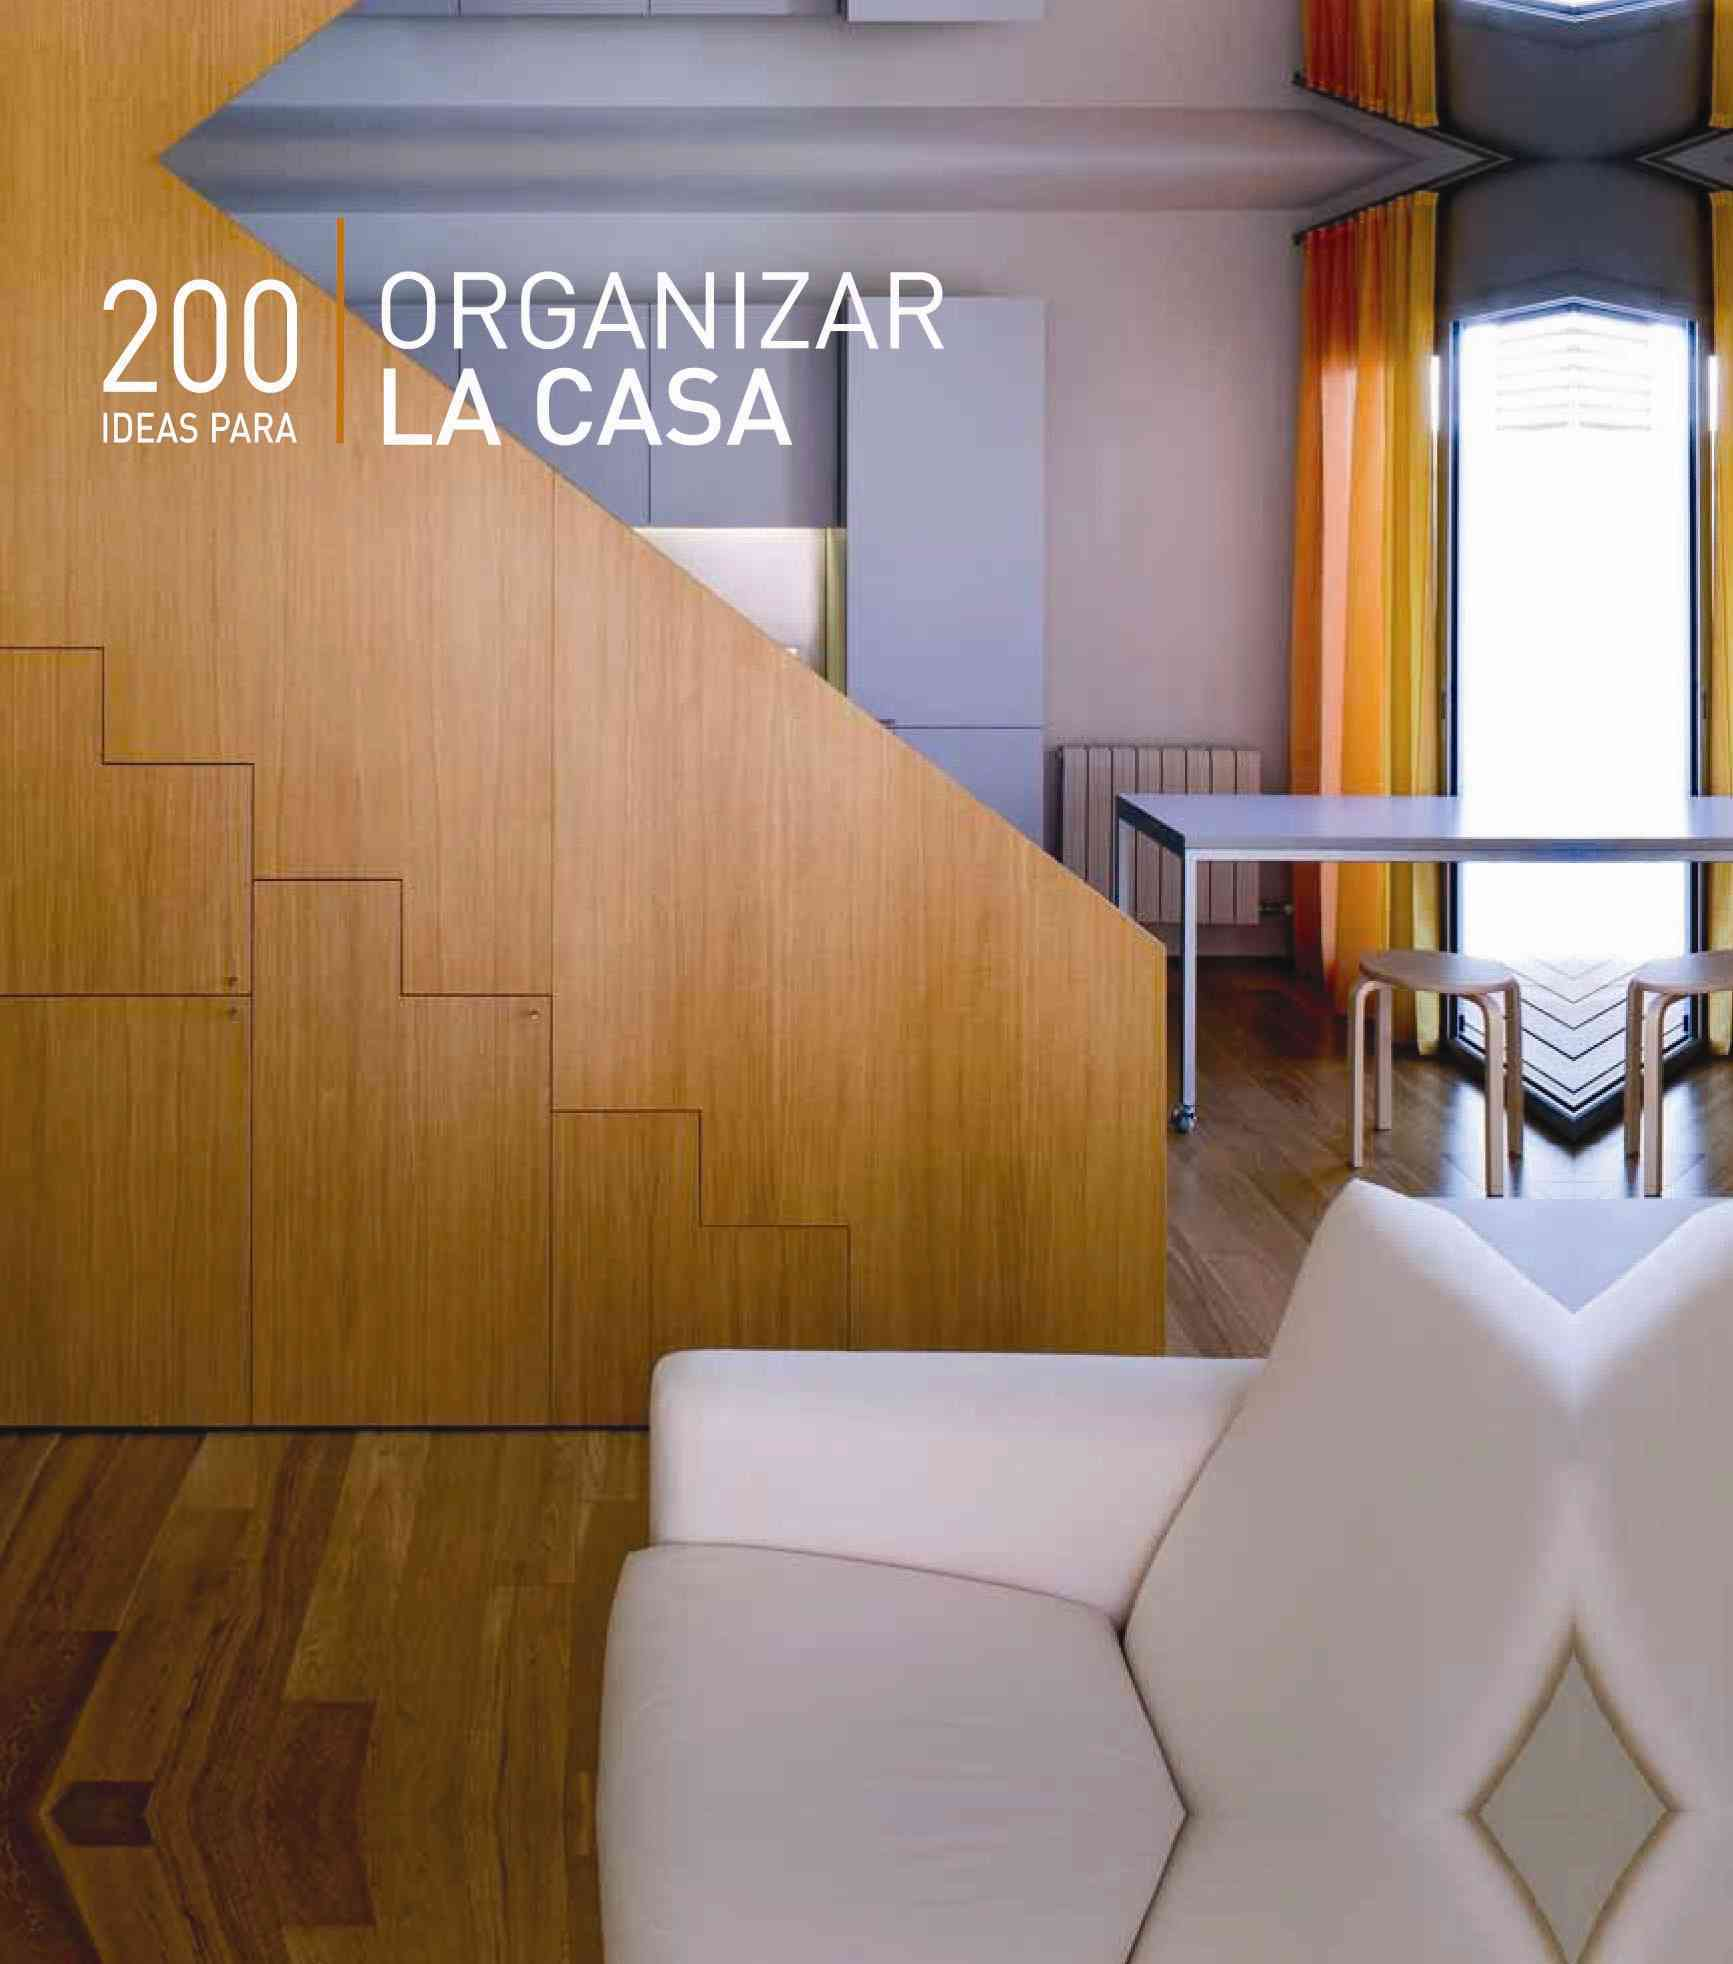 200 ideas para el orden en casa /  Ideas for the House Order